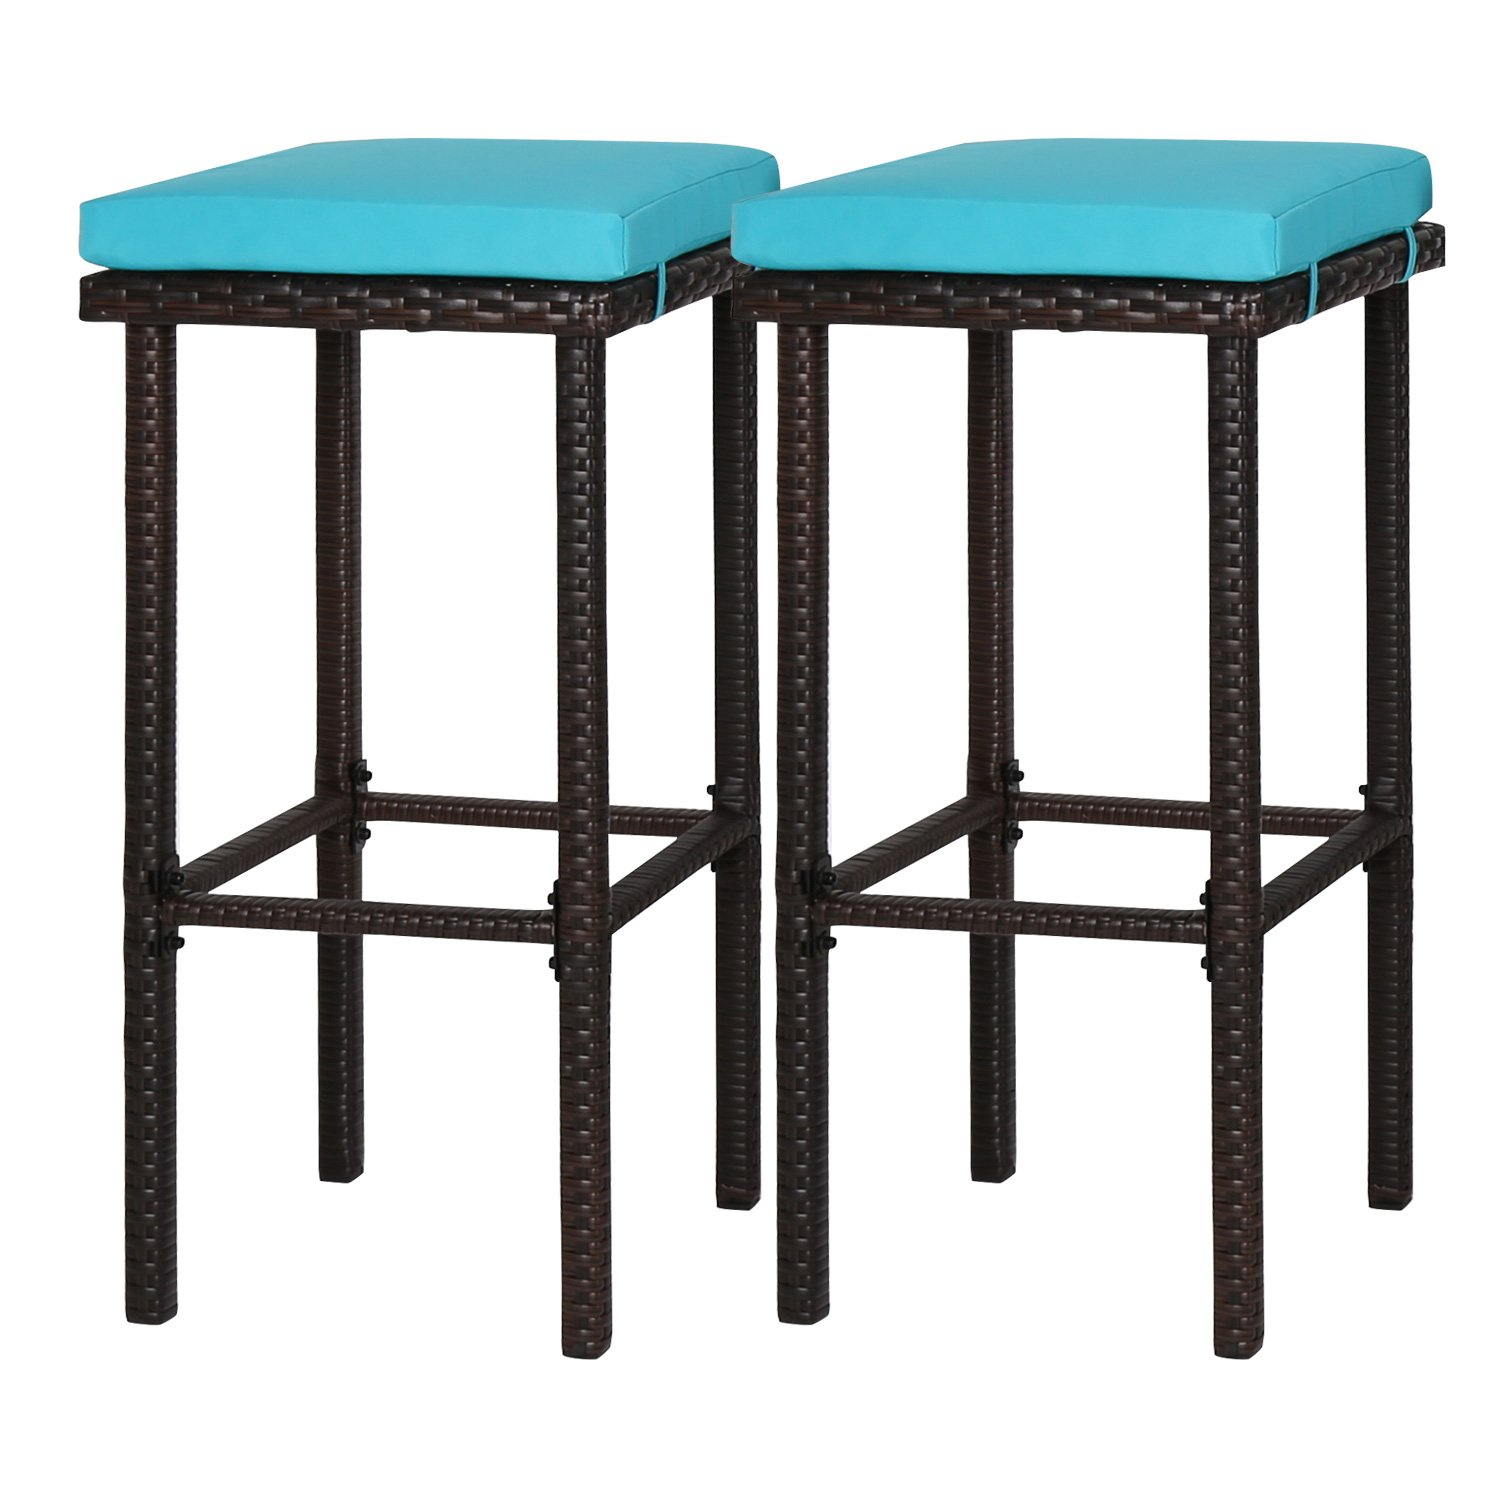 Kinbor 2 Pcs Wicker Rattan Bar Stool Counter Height Patio Outdoor Bar Chair Furniture Set with Blue Cushions by Kinbor (Image #1)